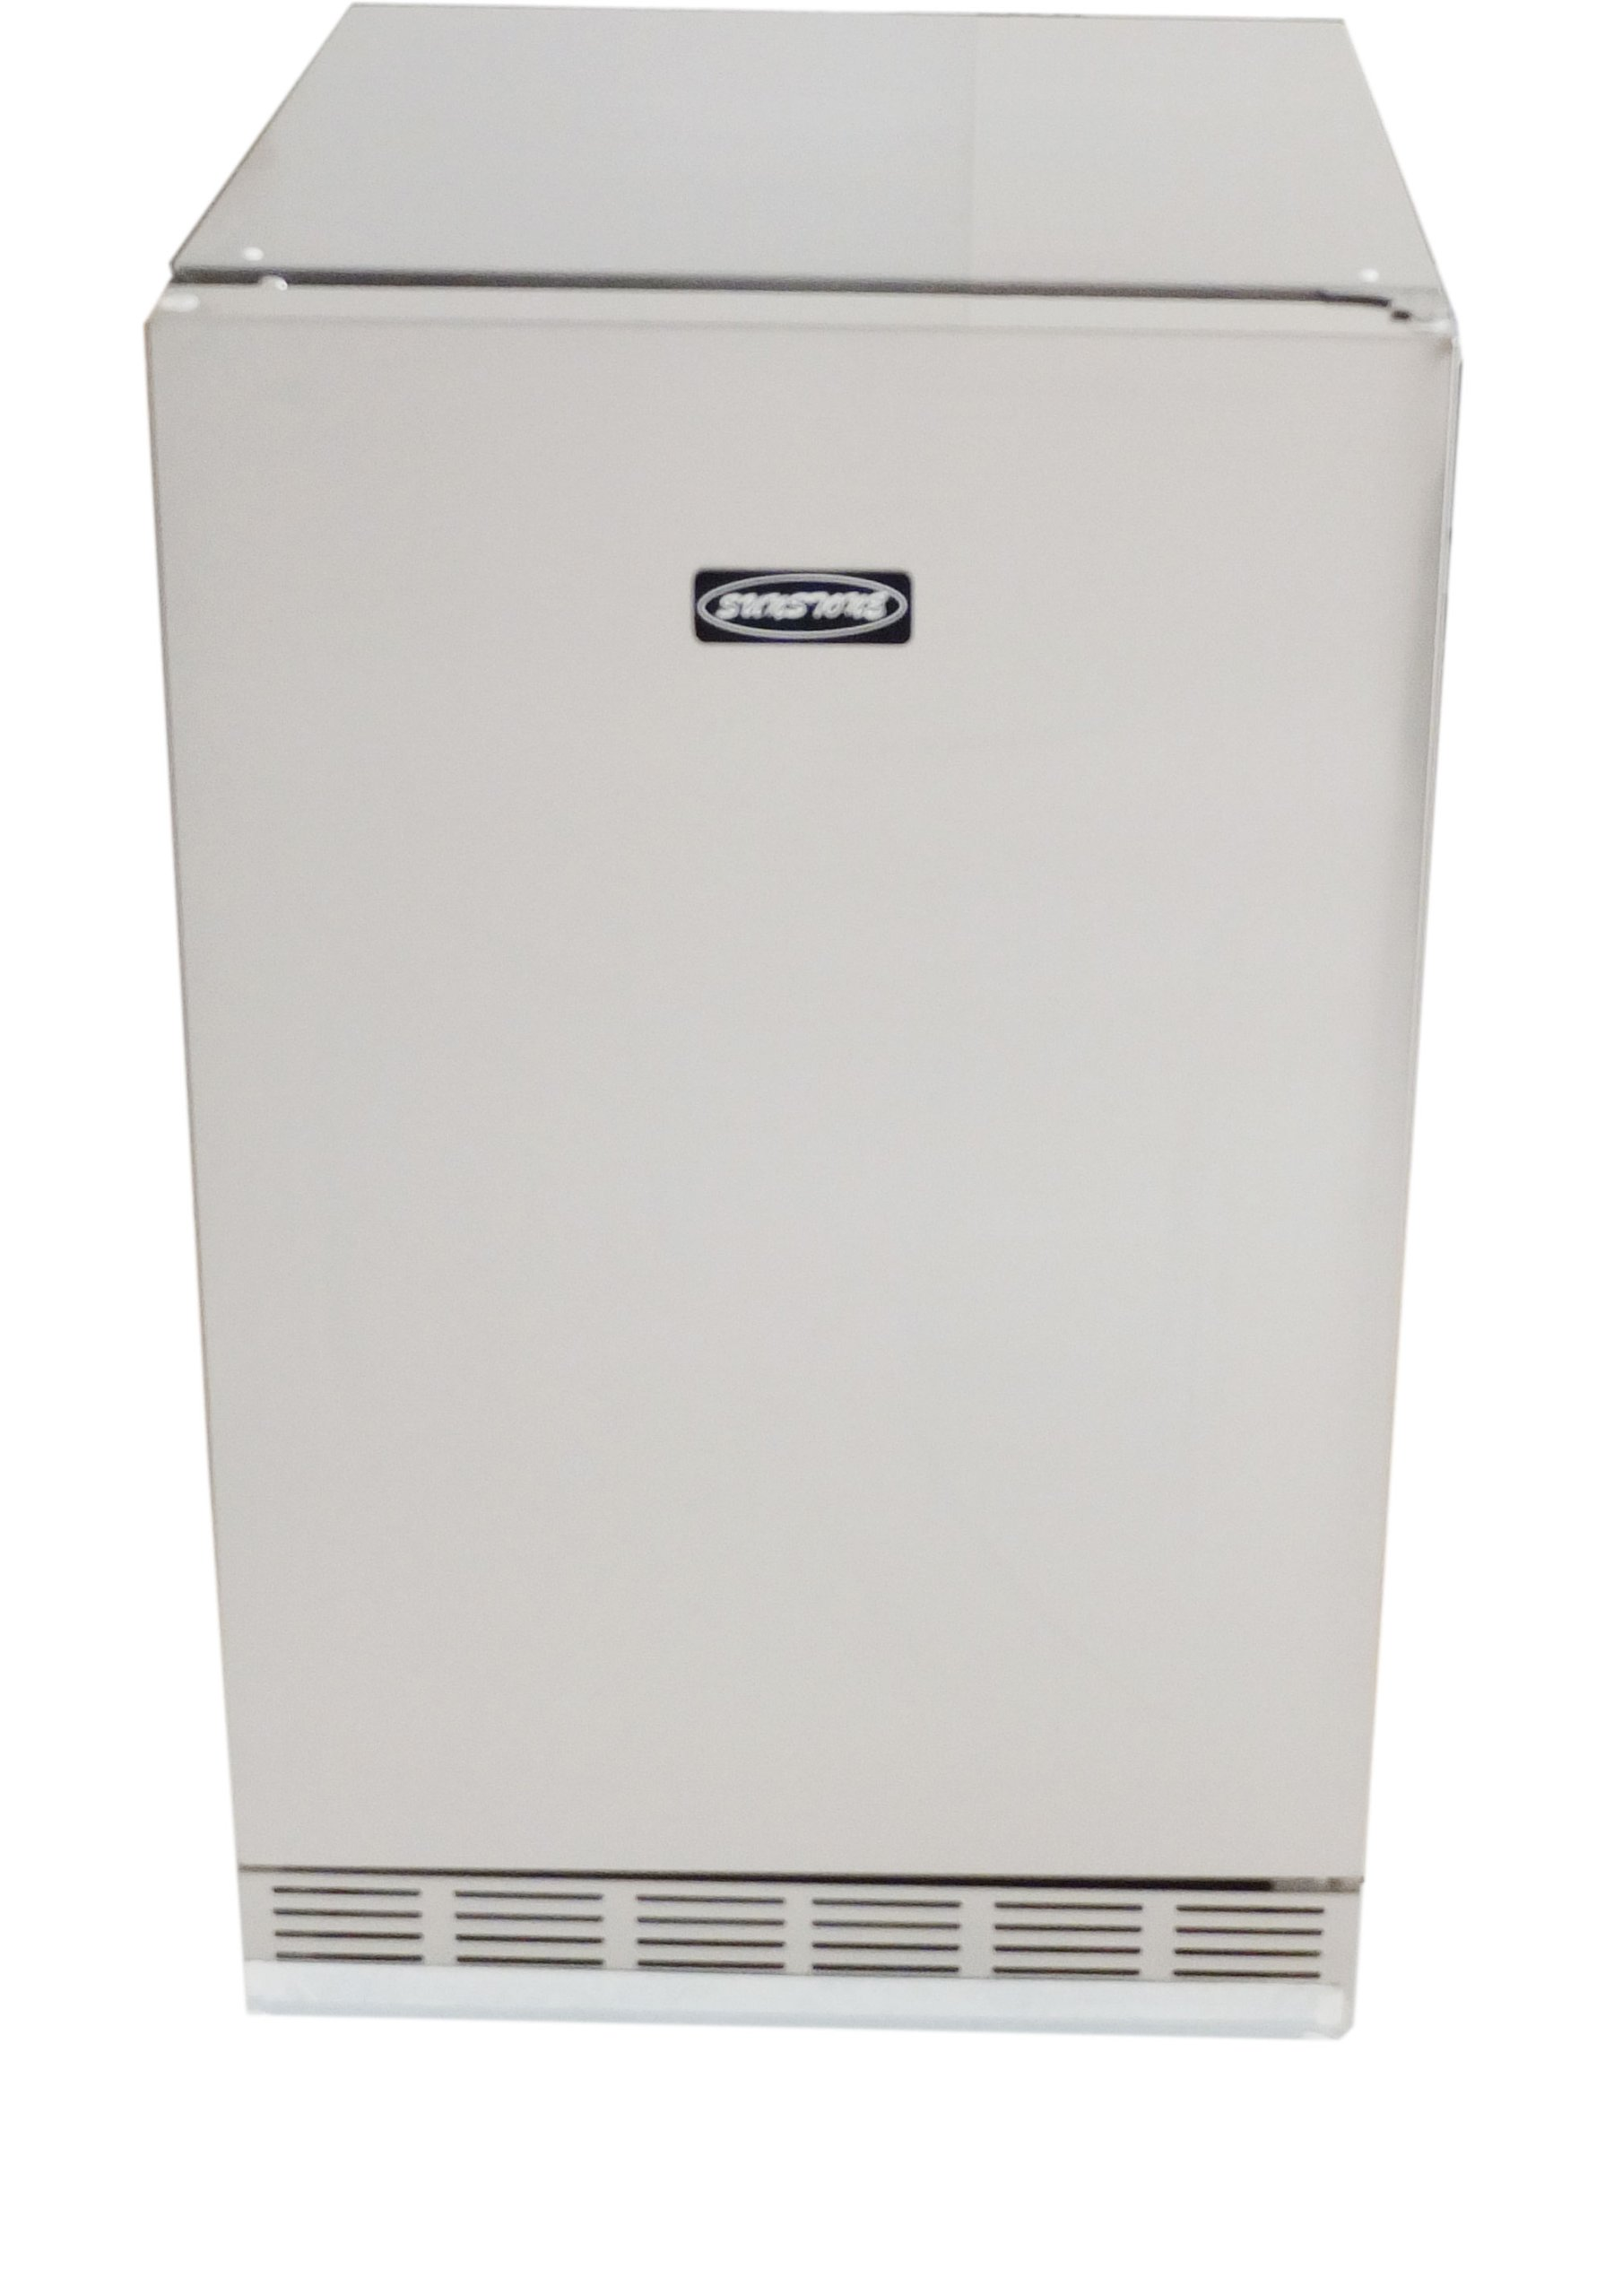 Sunstone SUNFR401 304 Stainless Steel Outdoor Rated Refrigerator by SUNSTONE (Image #1)